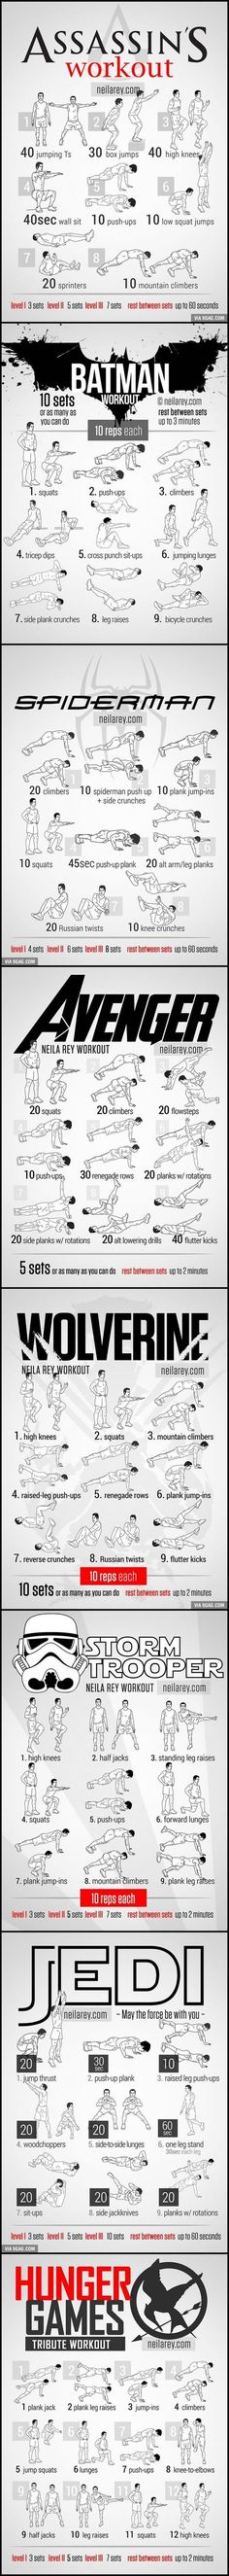 for Assassin, Batman, Spiderman, Avenger, Wolverine. Workout-for-Assassin-Batman-Spiderman-Avenger-WolvWorkout-for-Assassin-Batman-Spiderman-Avenger-Wolv Zumba Fitness, Fitness Workouts, Body Fitness, At Home Workouts, Fitness Motivation, Health Fitness, Fitness Goals, Hero Workouts, Weight Workouts